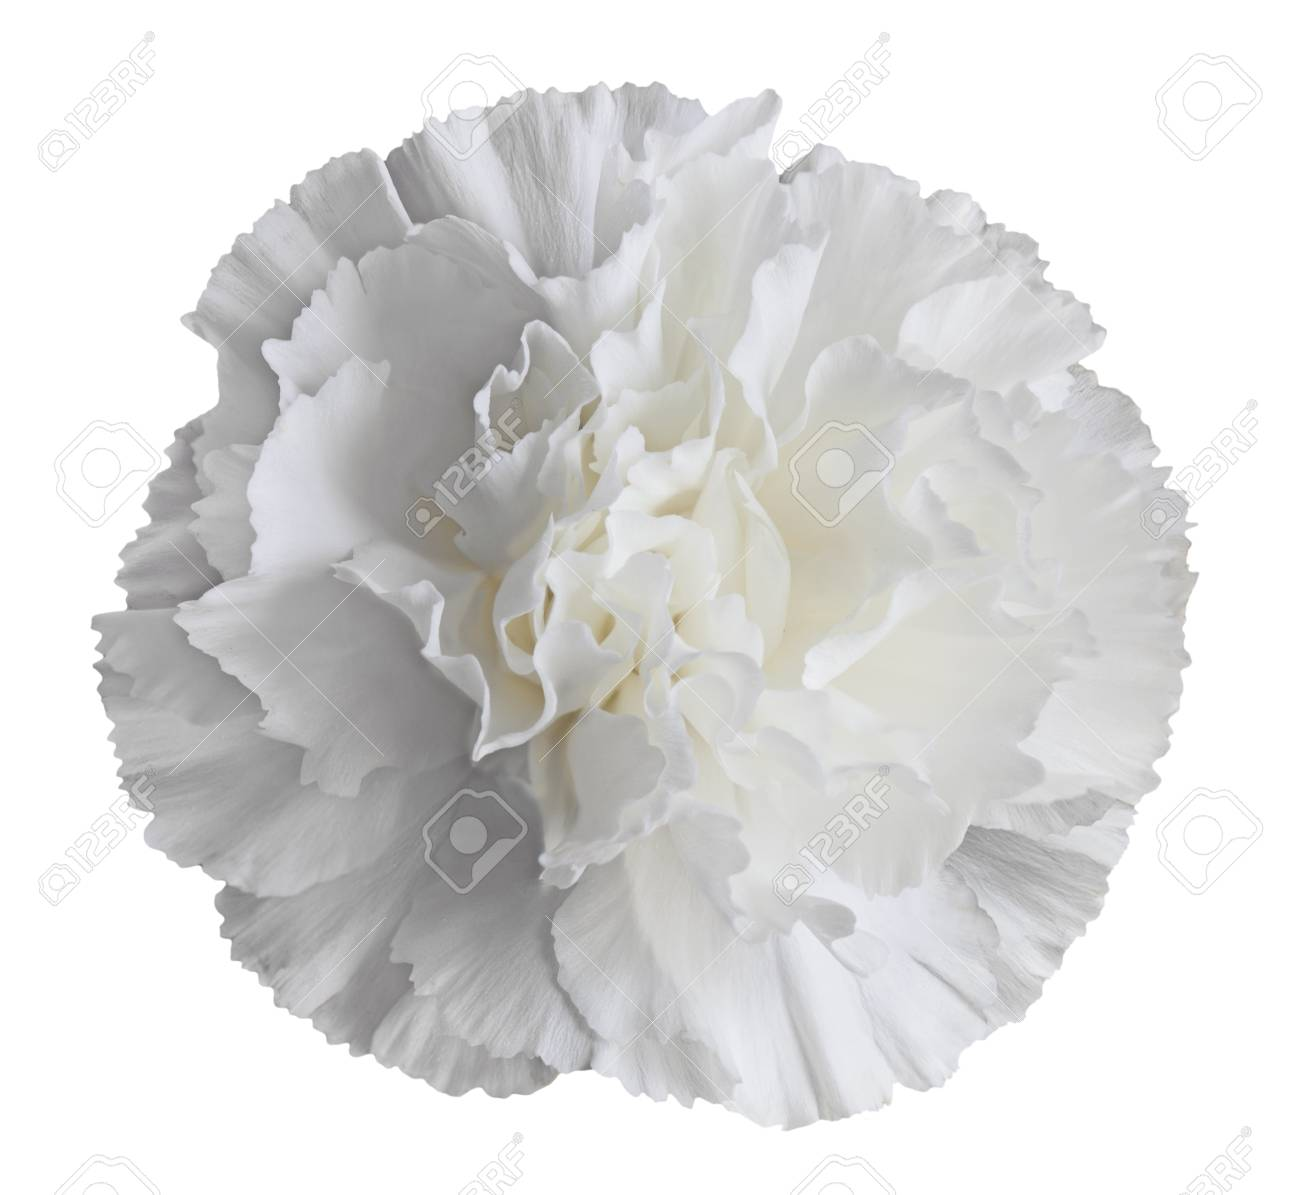 Single Fresh White Carnation Flower Isolated Stock Photo, Picture ...